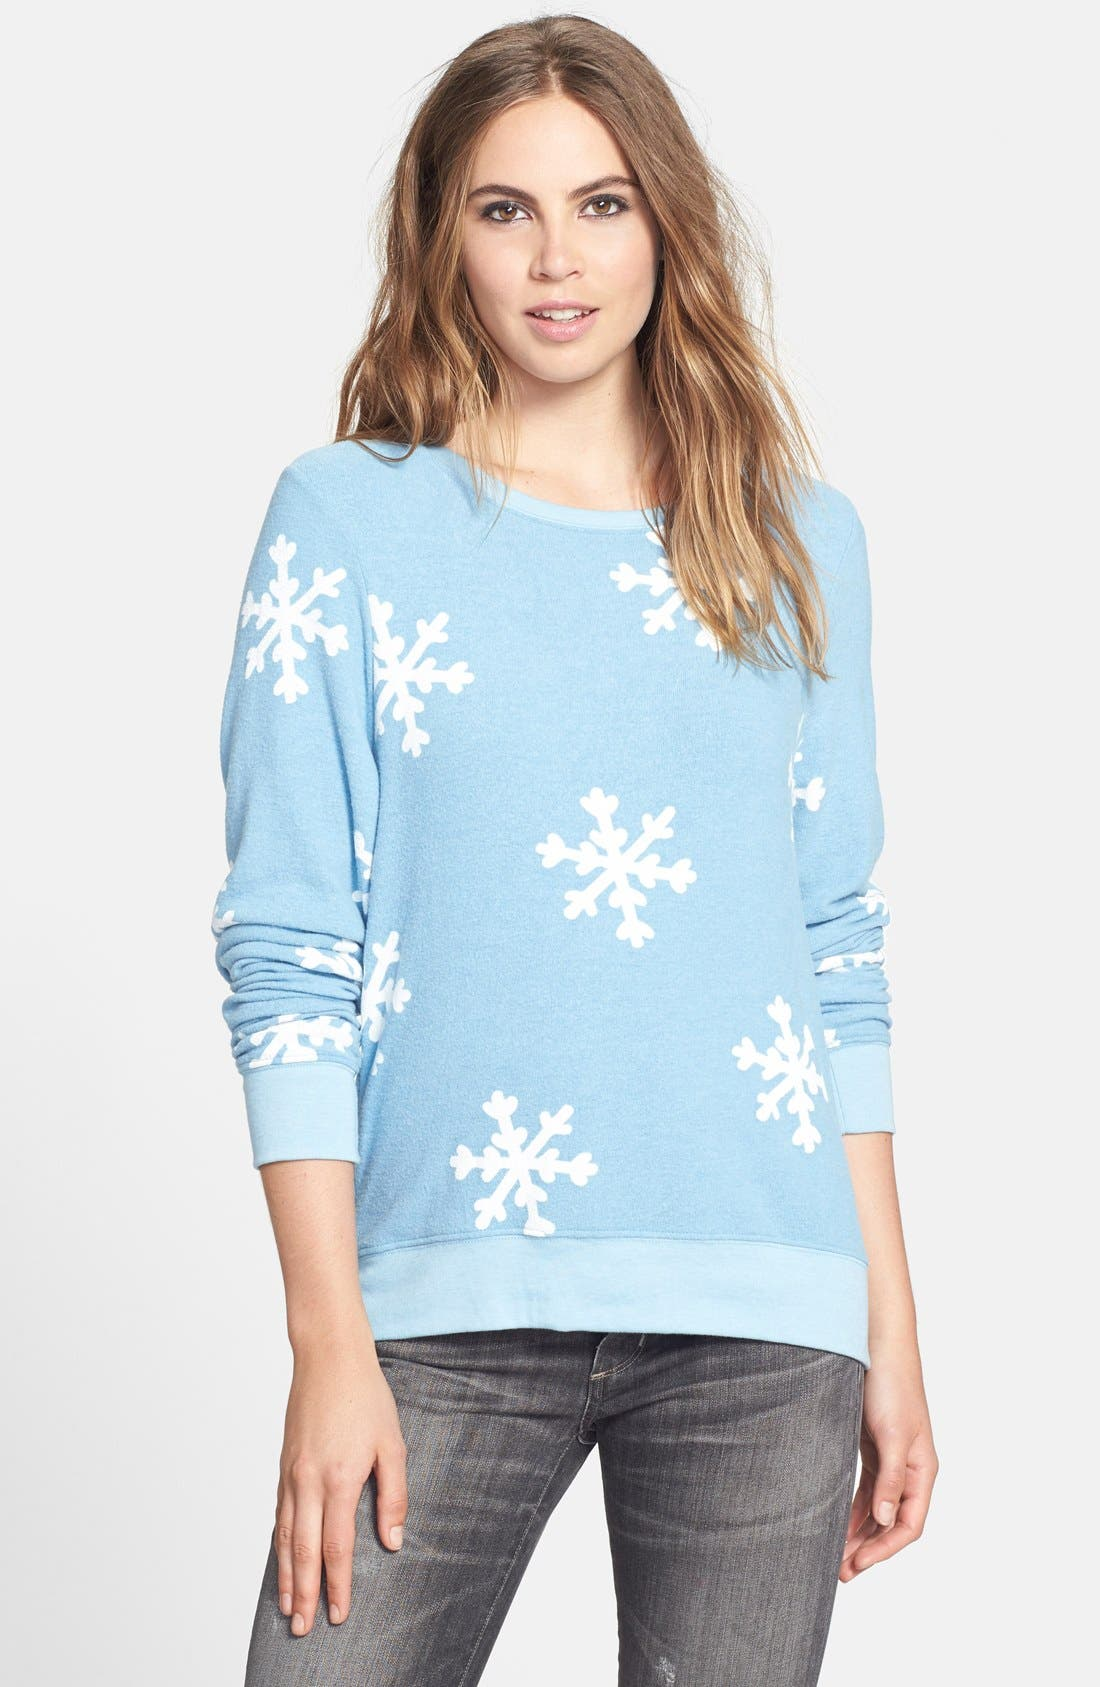 Main Image - Wildfox 'Snowflake' Baggy Beach Jumper Pullover